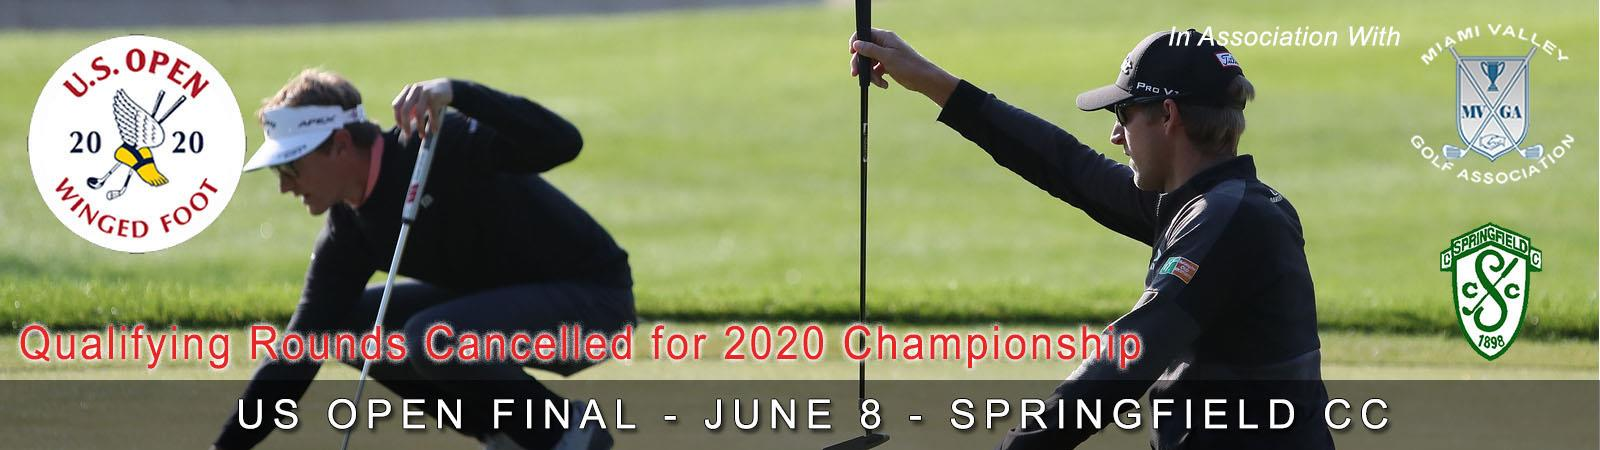 2020-06-08_-_US_Open_Final_-_Springfield_CC_-_Cancelled